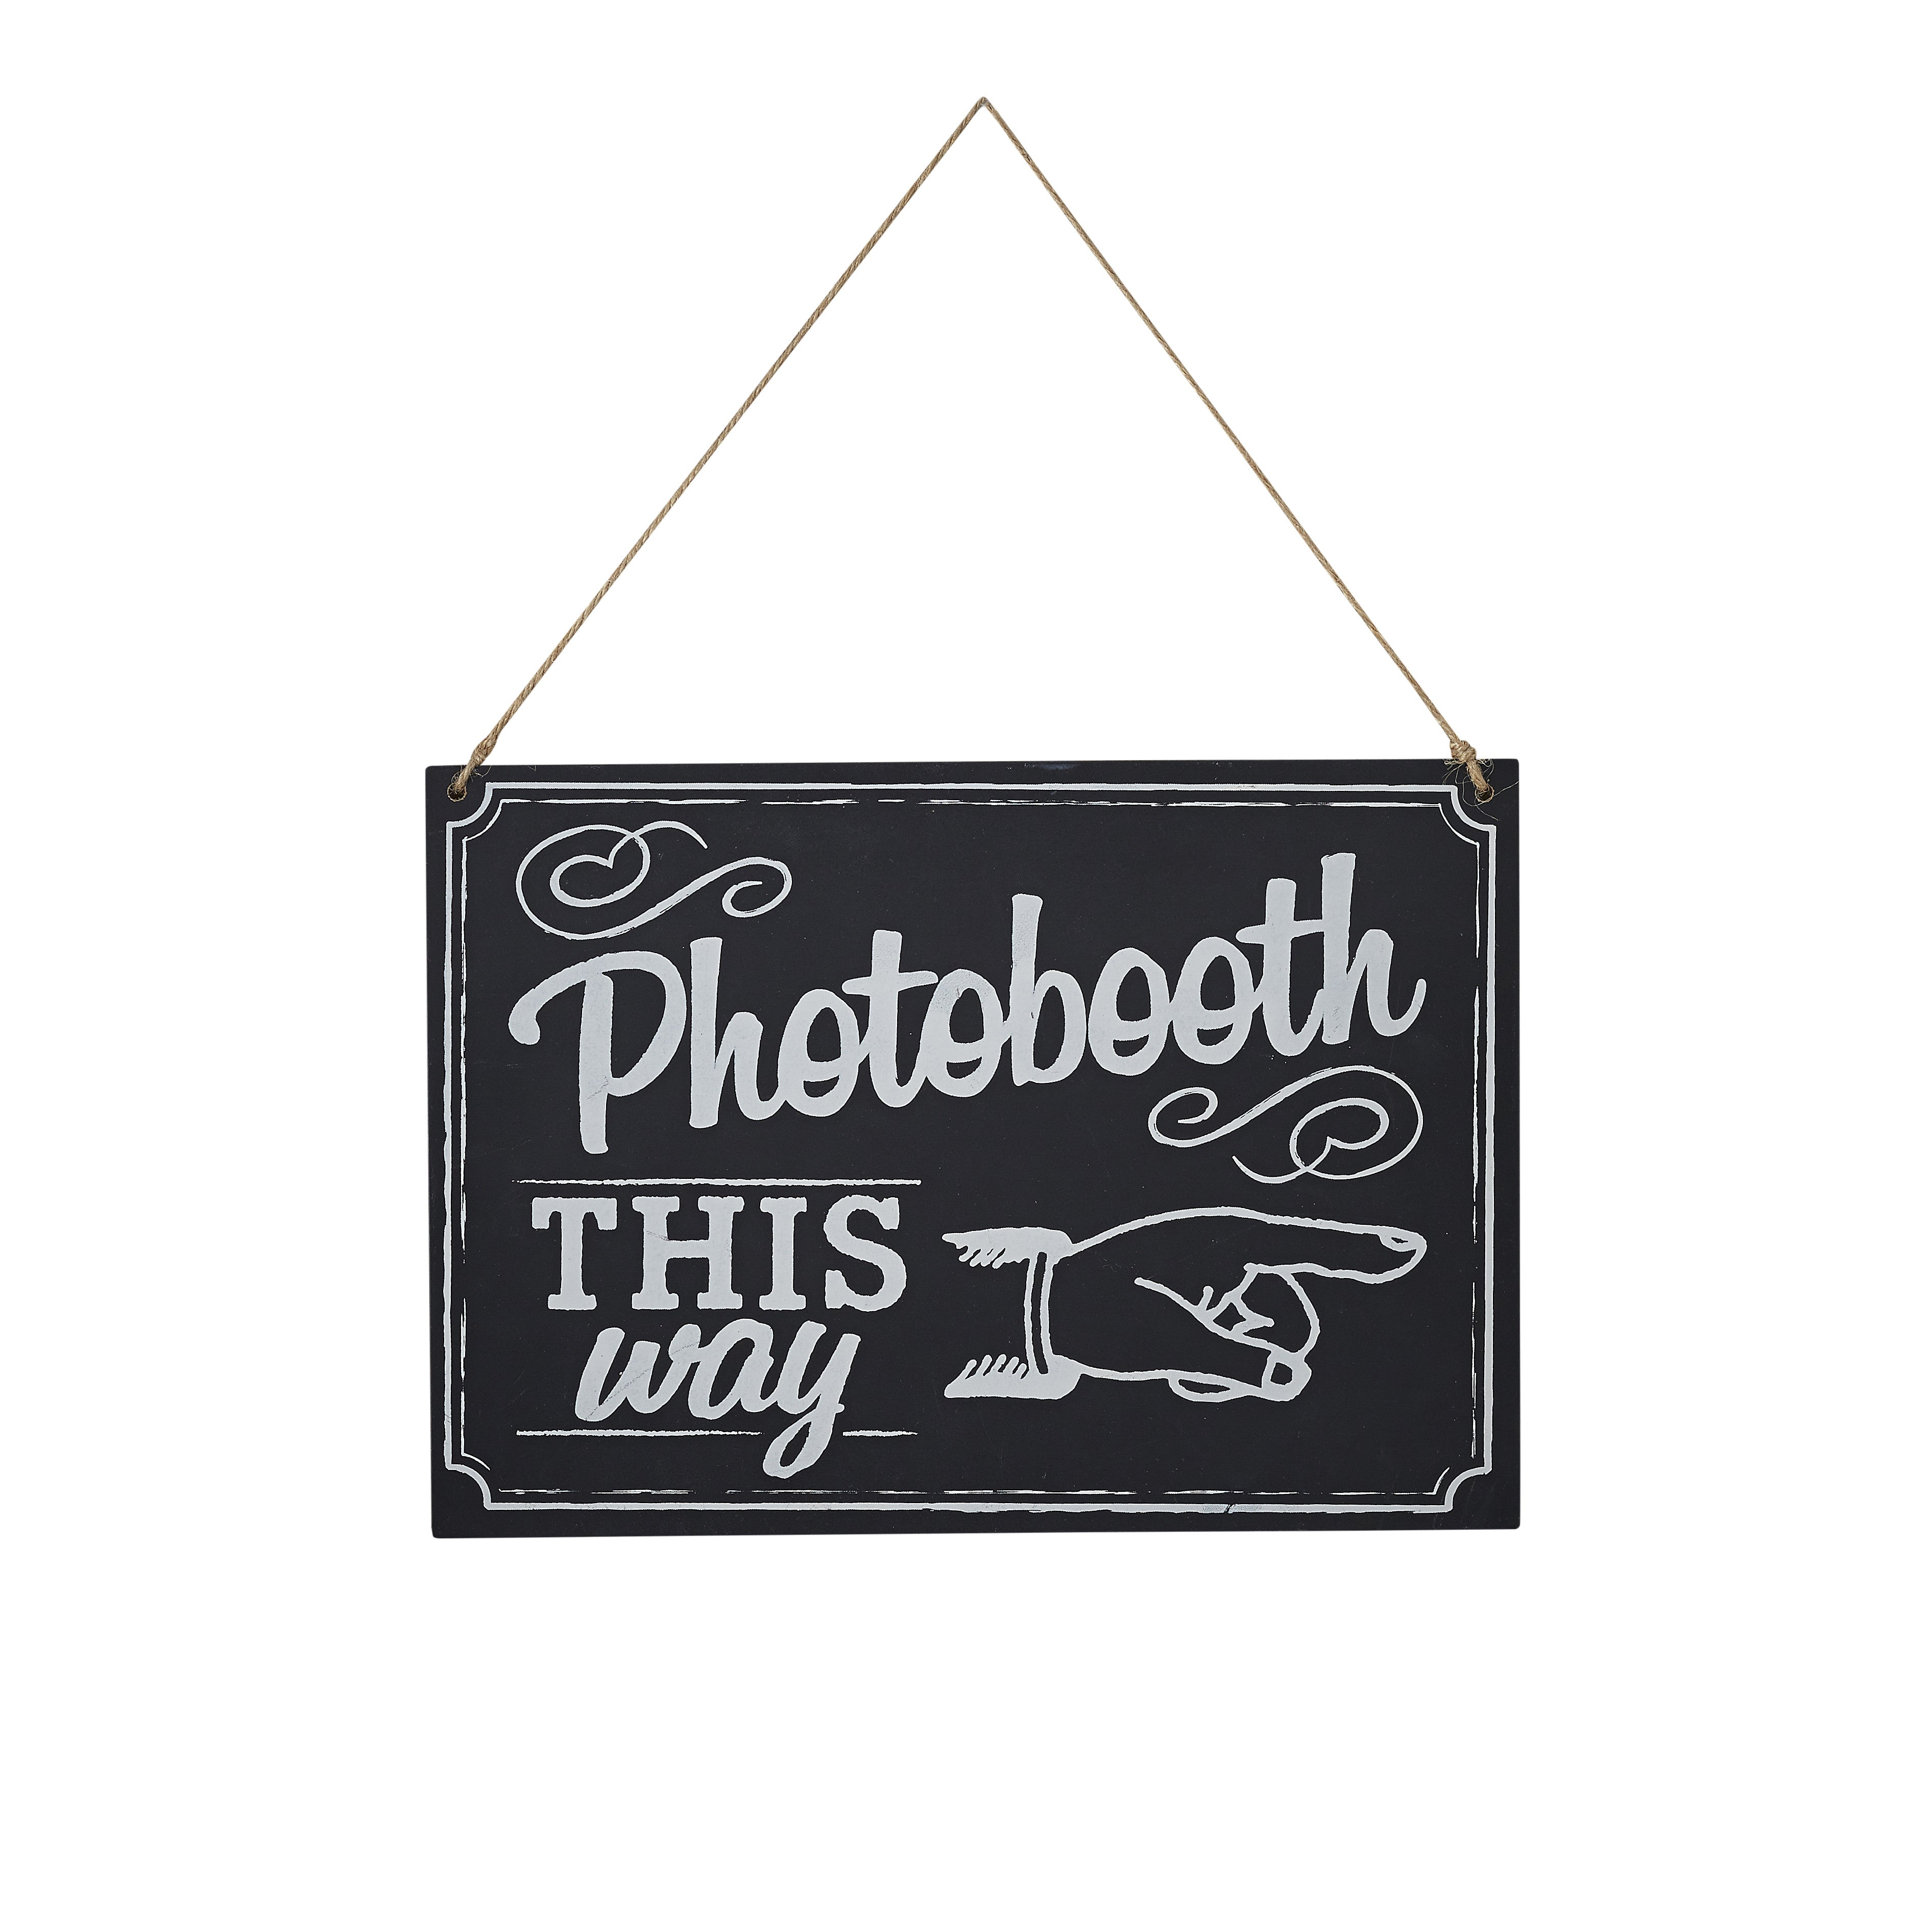 CHALKBOARD WOODEN PHOTOBOOTH SIGN from Flingers Party World Bristol Harbourside who offer a huge range of fancy dress costumes and partyware items